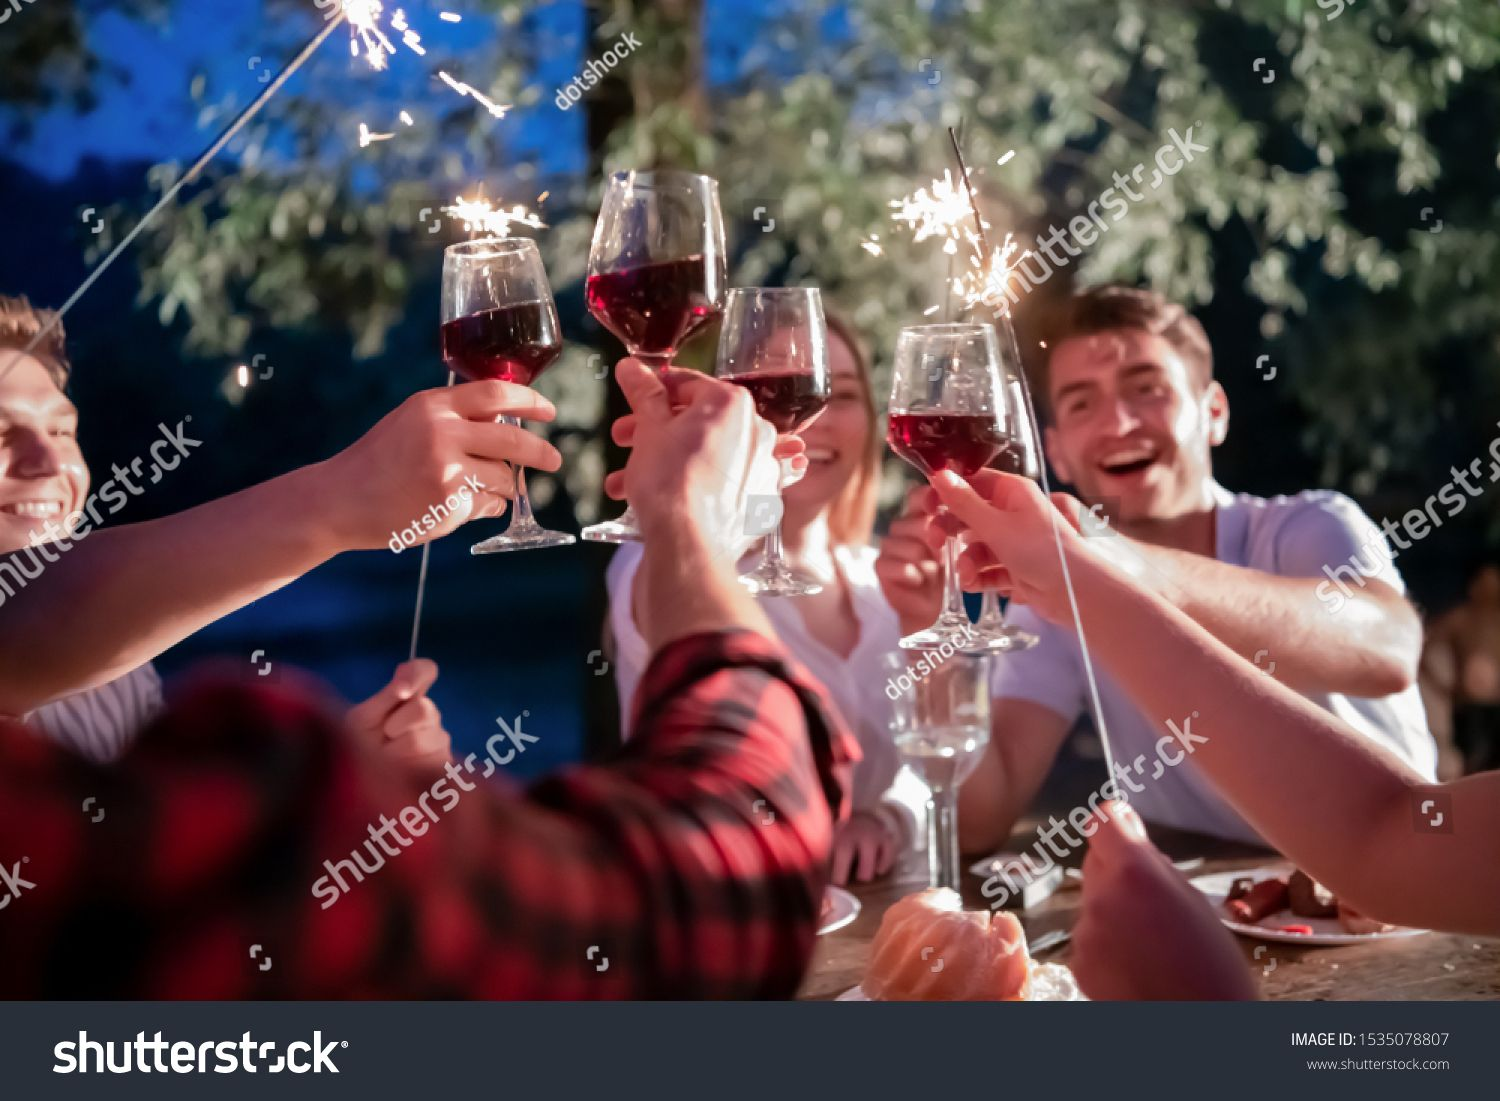 Group Of Happy Friends Celebrating Holiday Vacation Using Sprinklers And Drinking Red Wine While Having Picnic French In 2020 Happy Friends Holiday Vacations Vacation